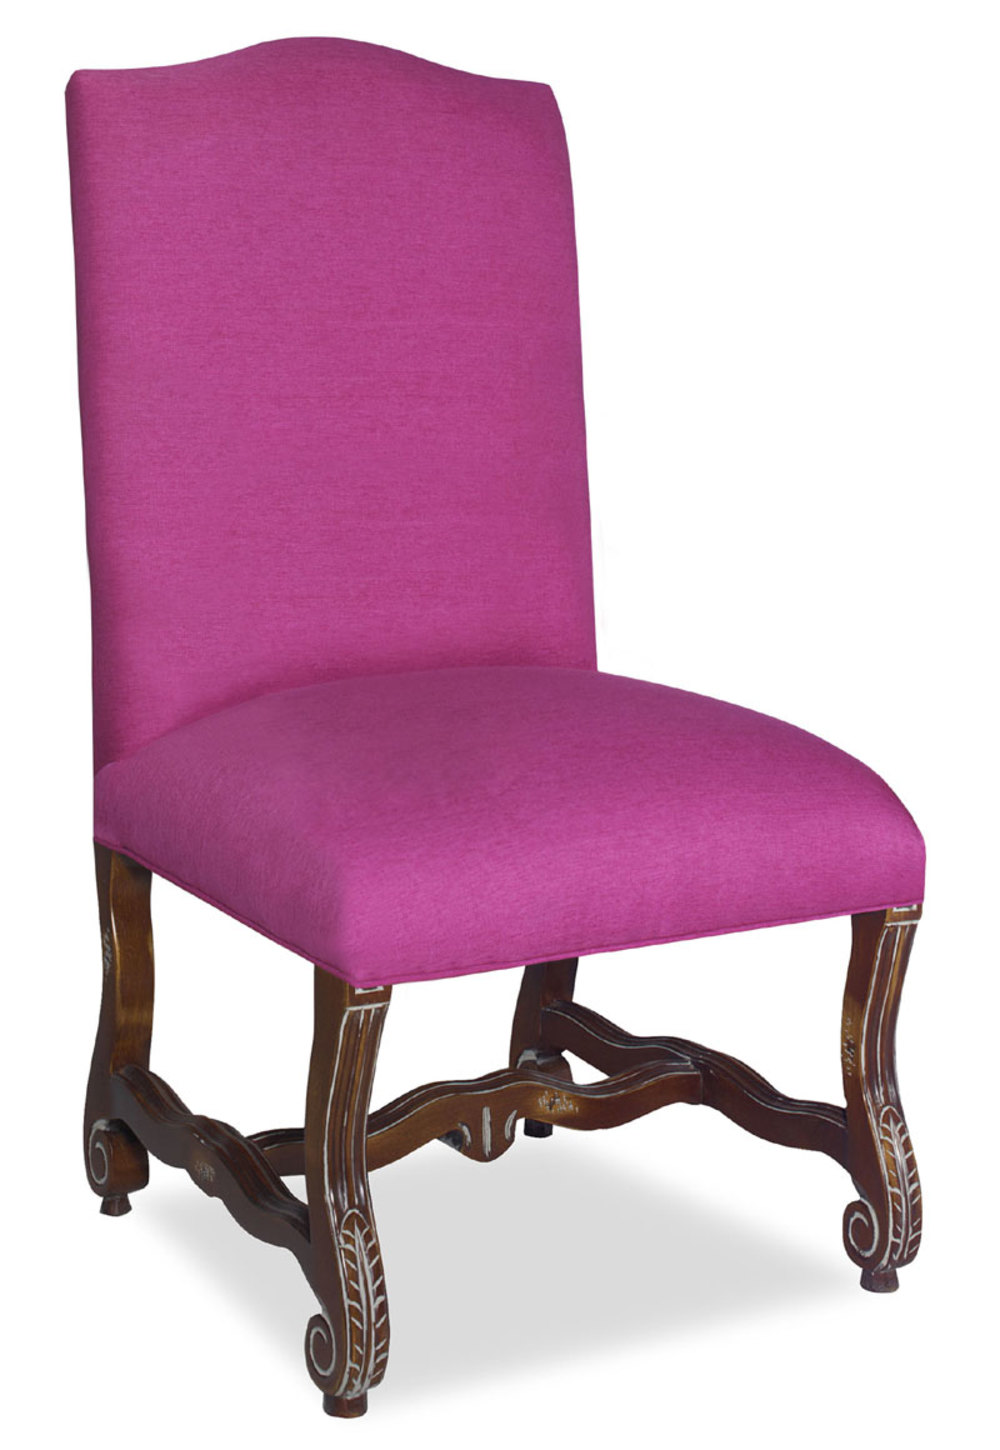 Parker Southern - Adrian Armless Chair